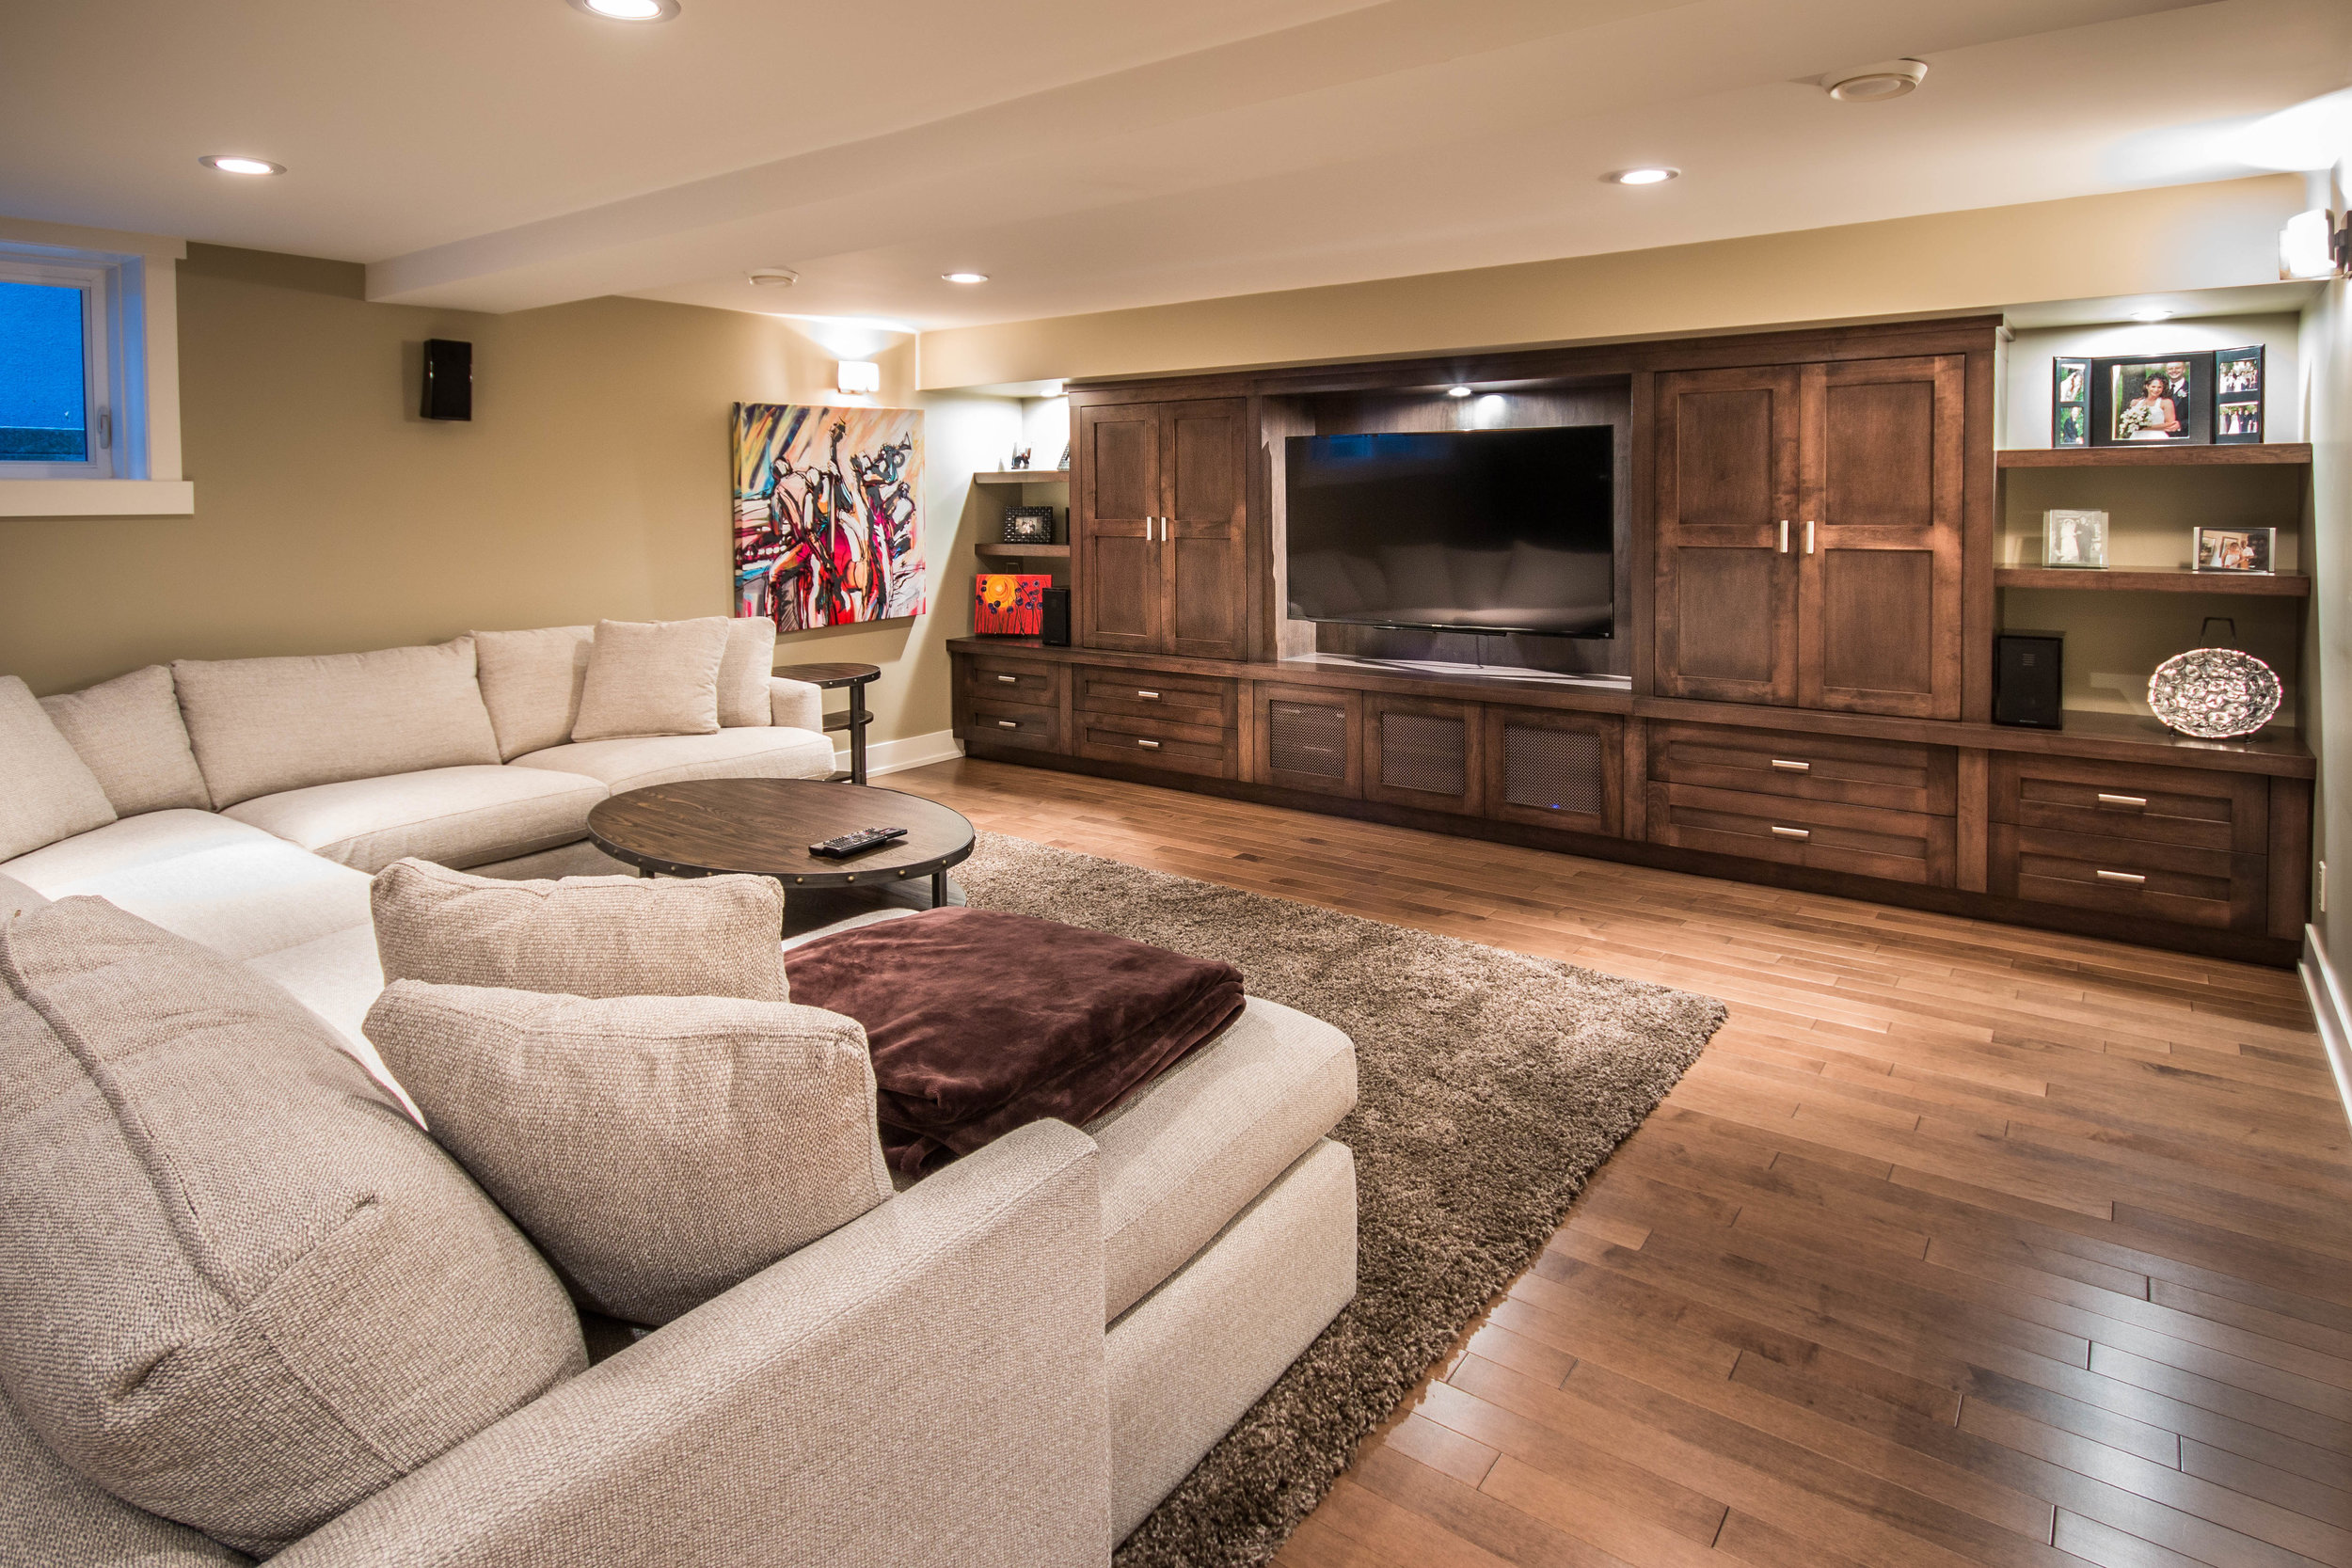 Basement living room with built ins